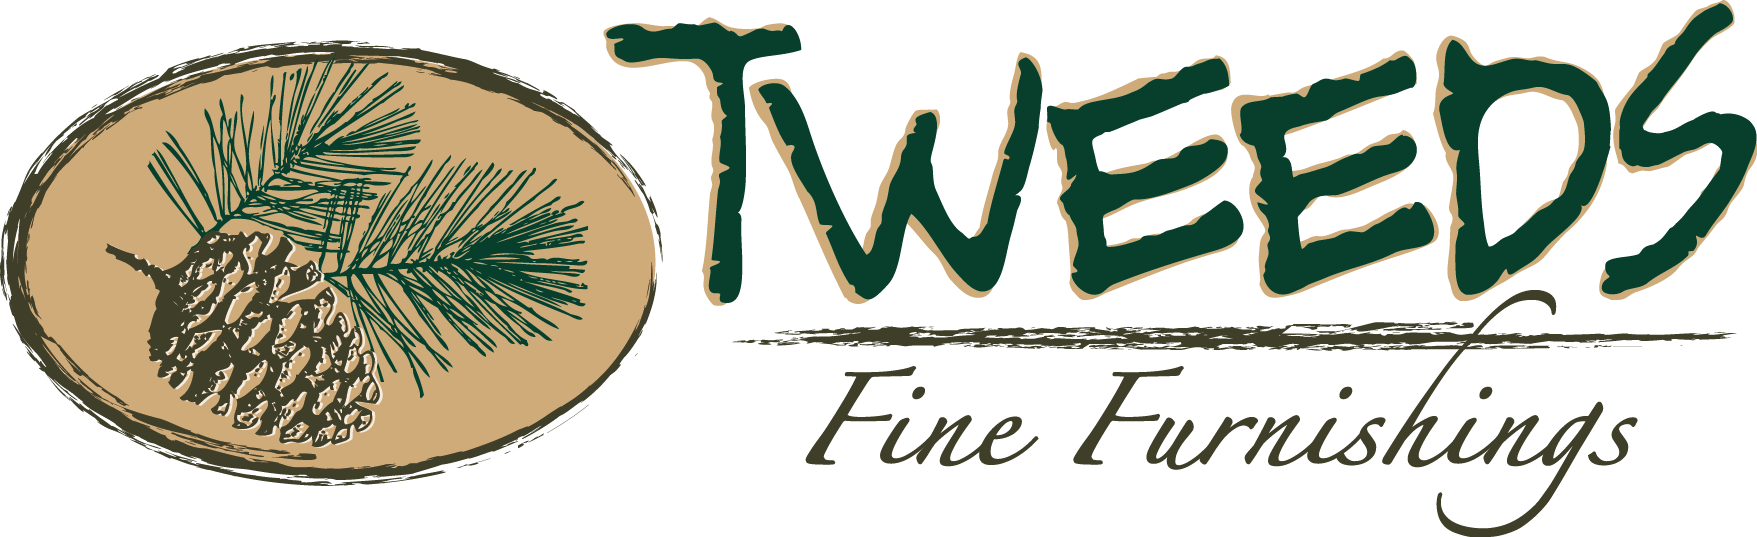 Tweeds Fine Furnishings